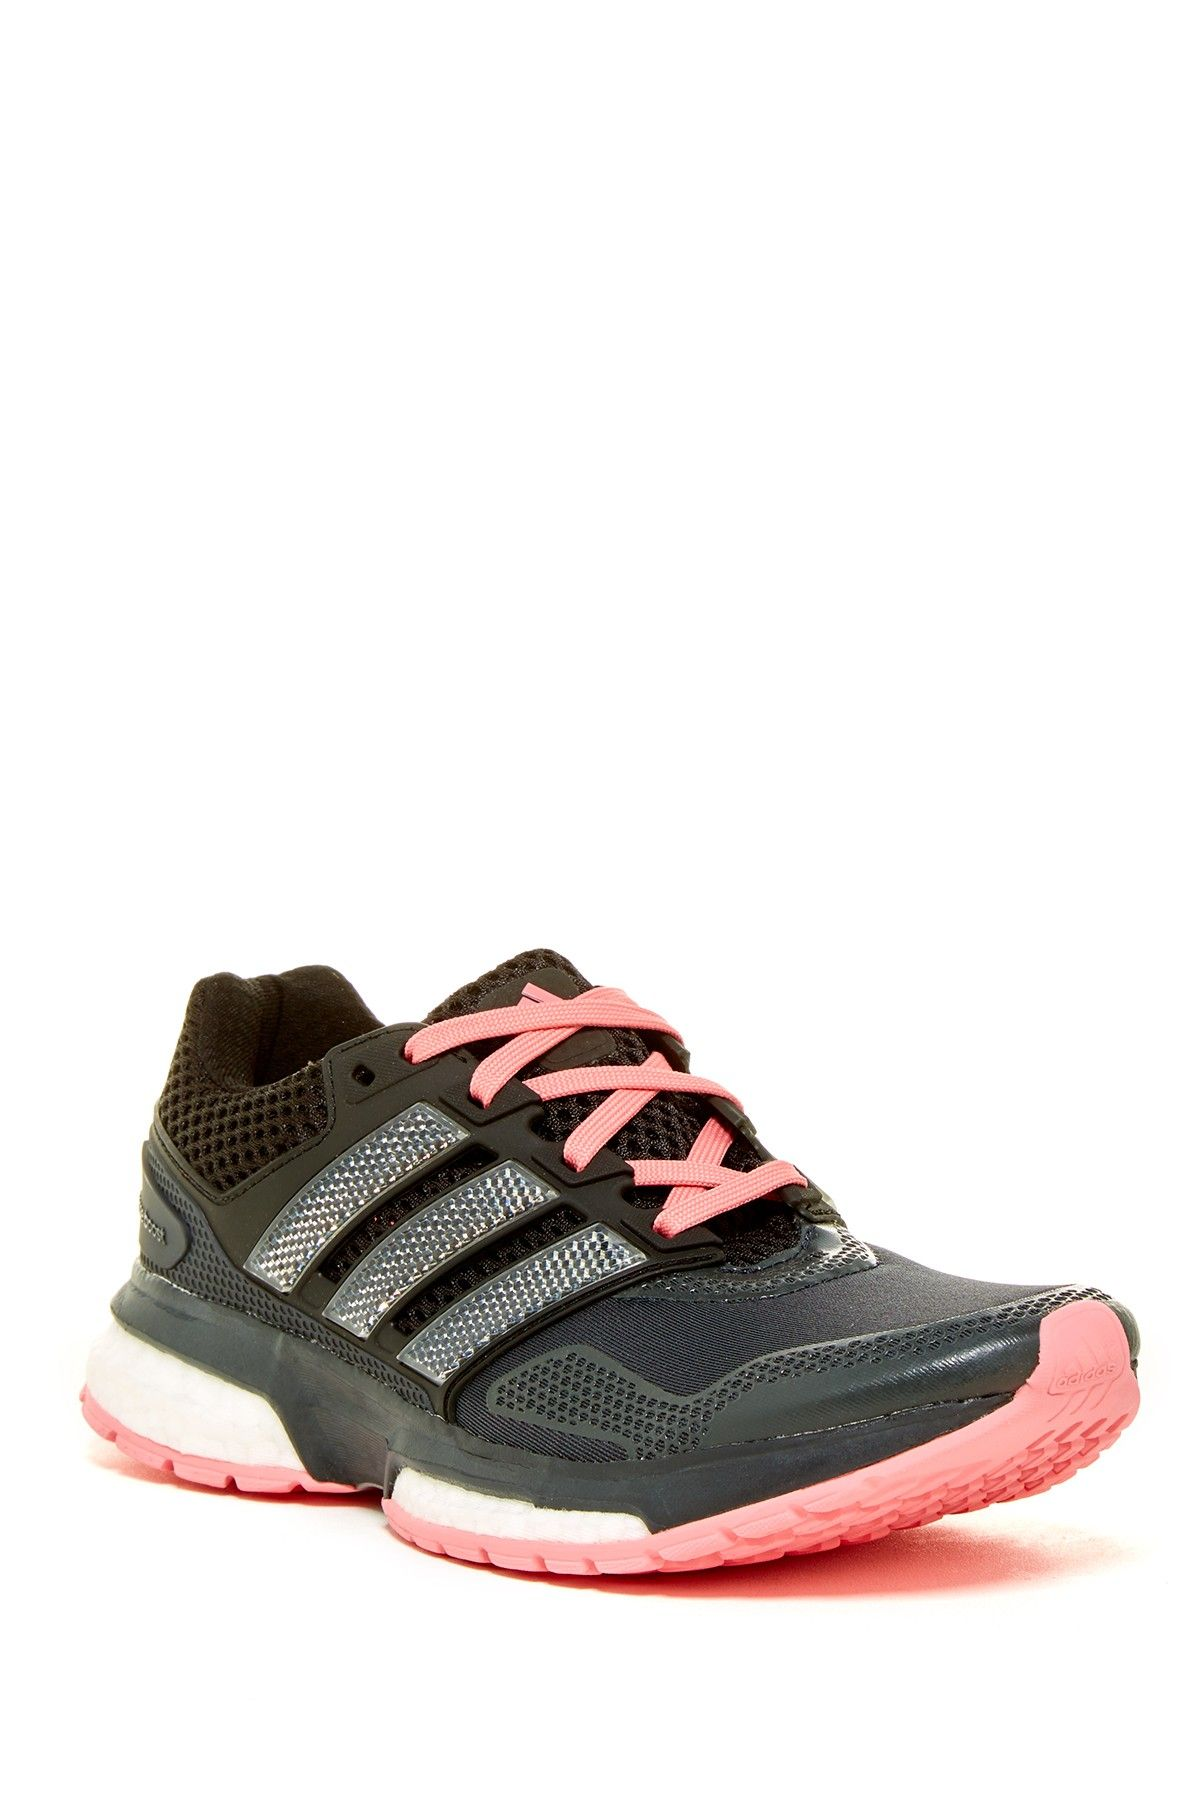 Adidas boost 2 running shoes. | Running shoes, Adidas